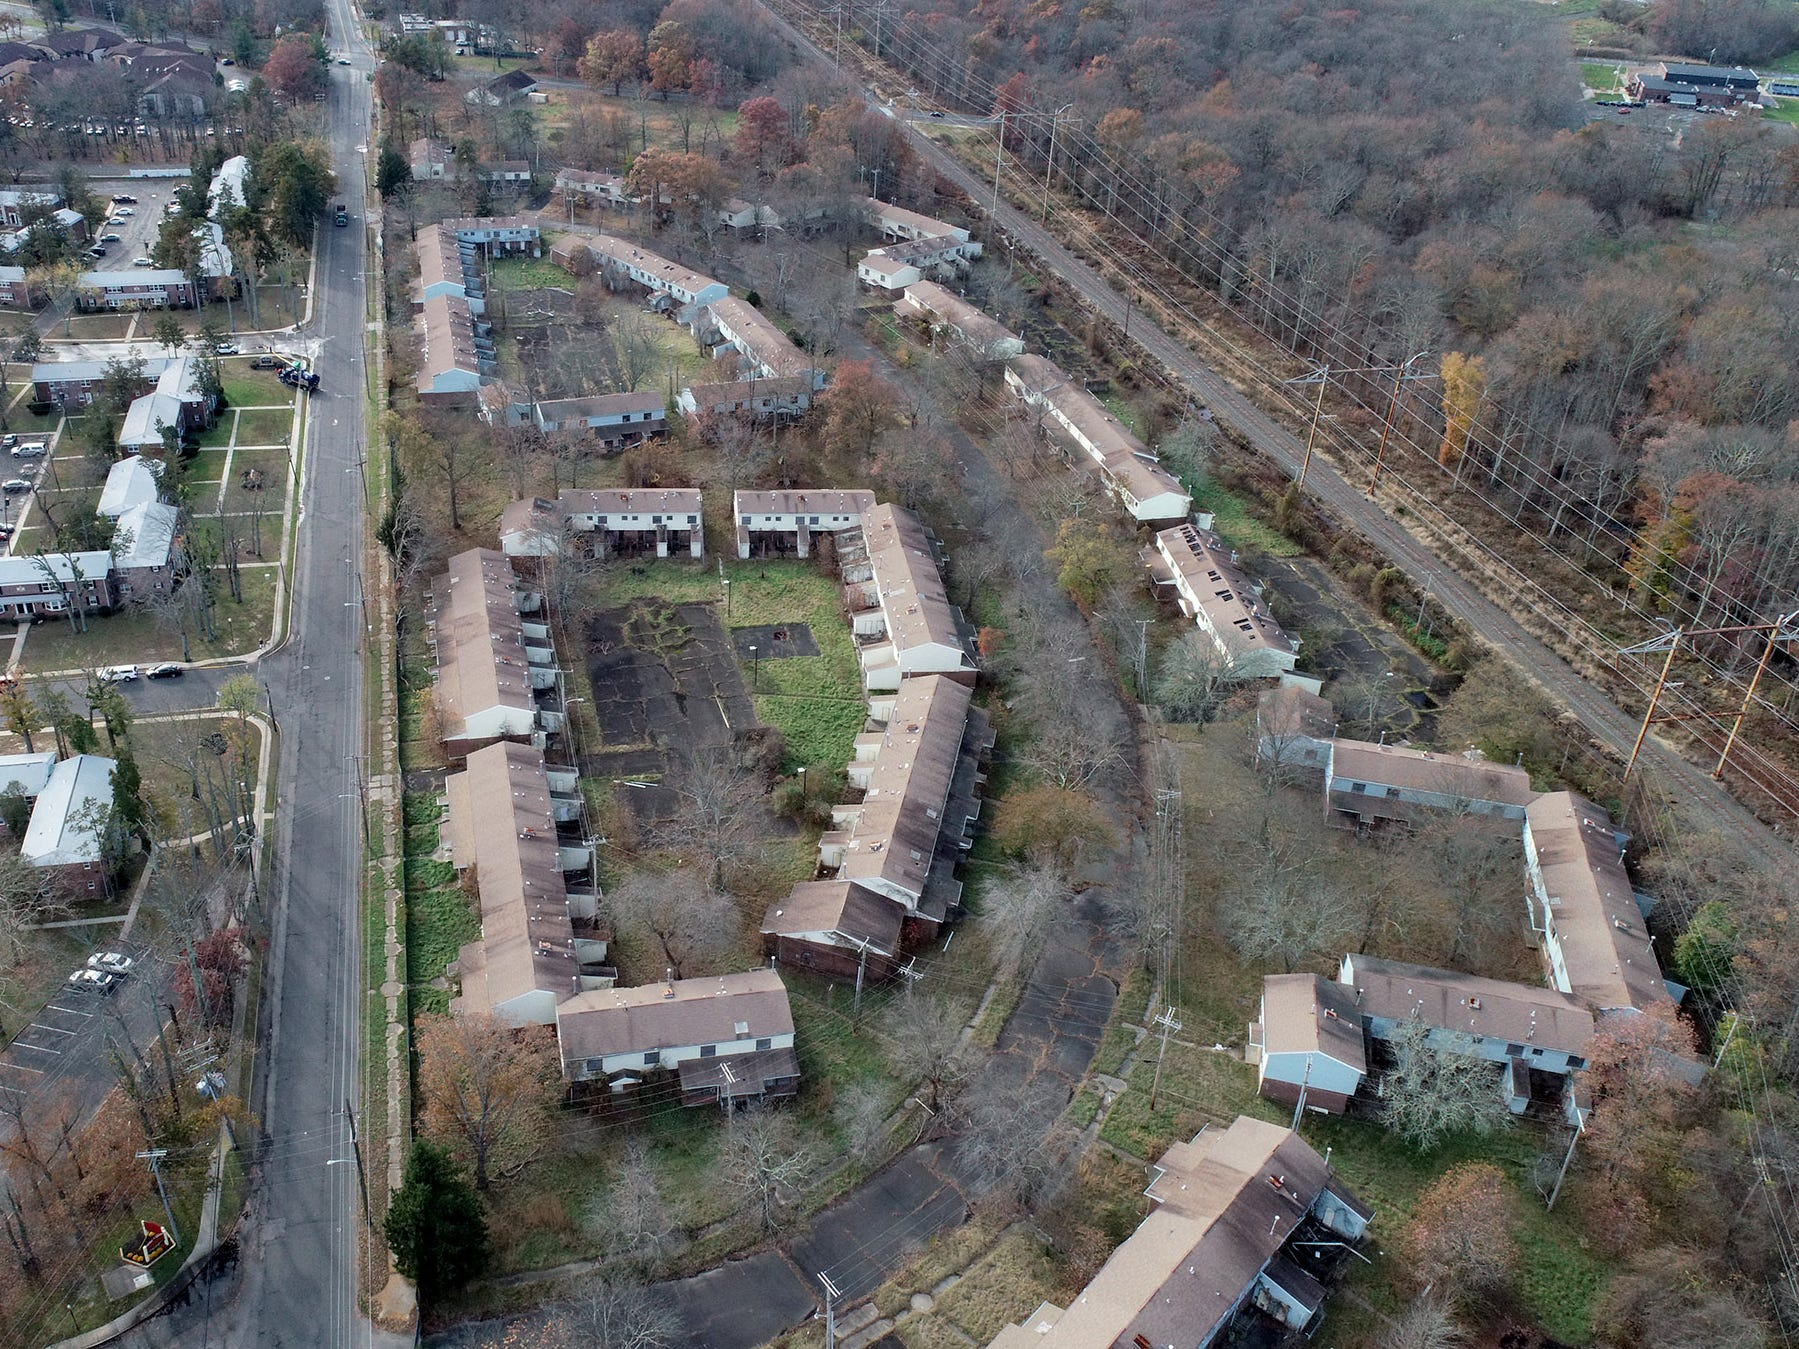 The Howard Commons area (right) on the former Fort Monmouth property is shown Wednesday, November 14, 2018.